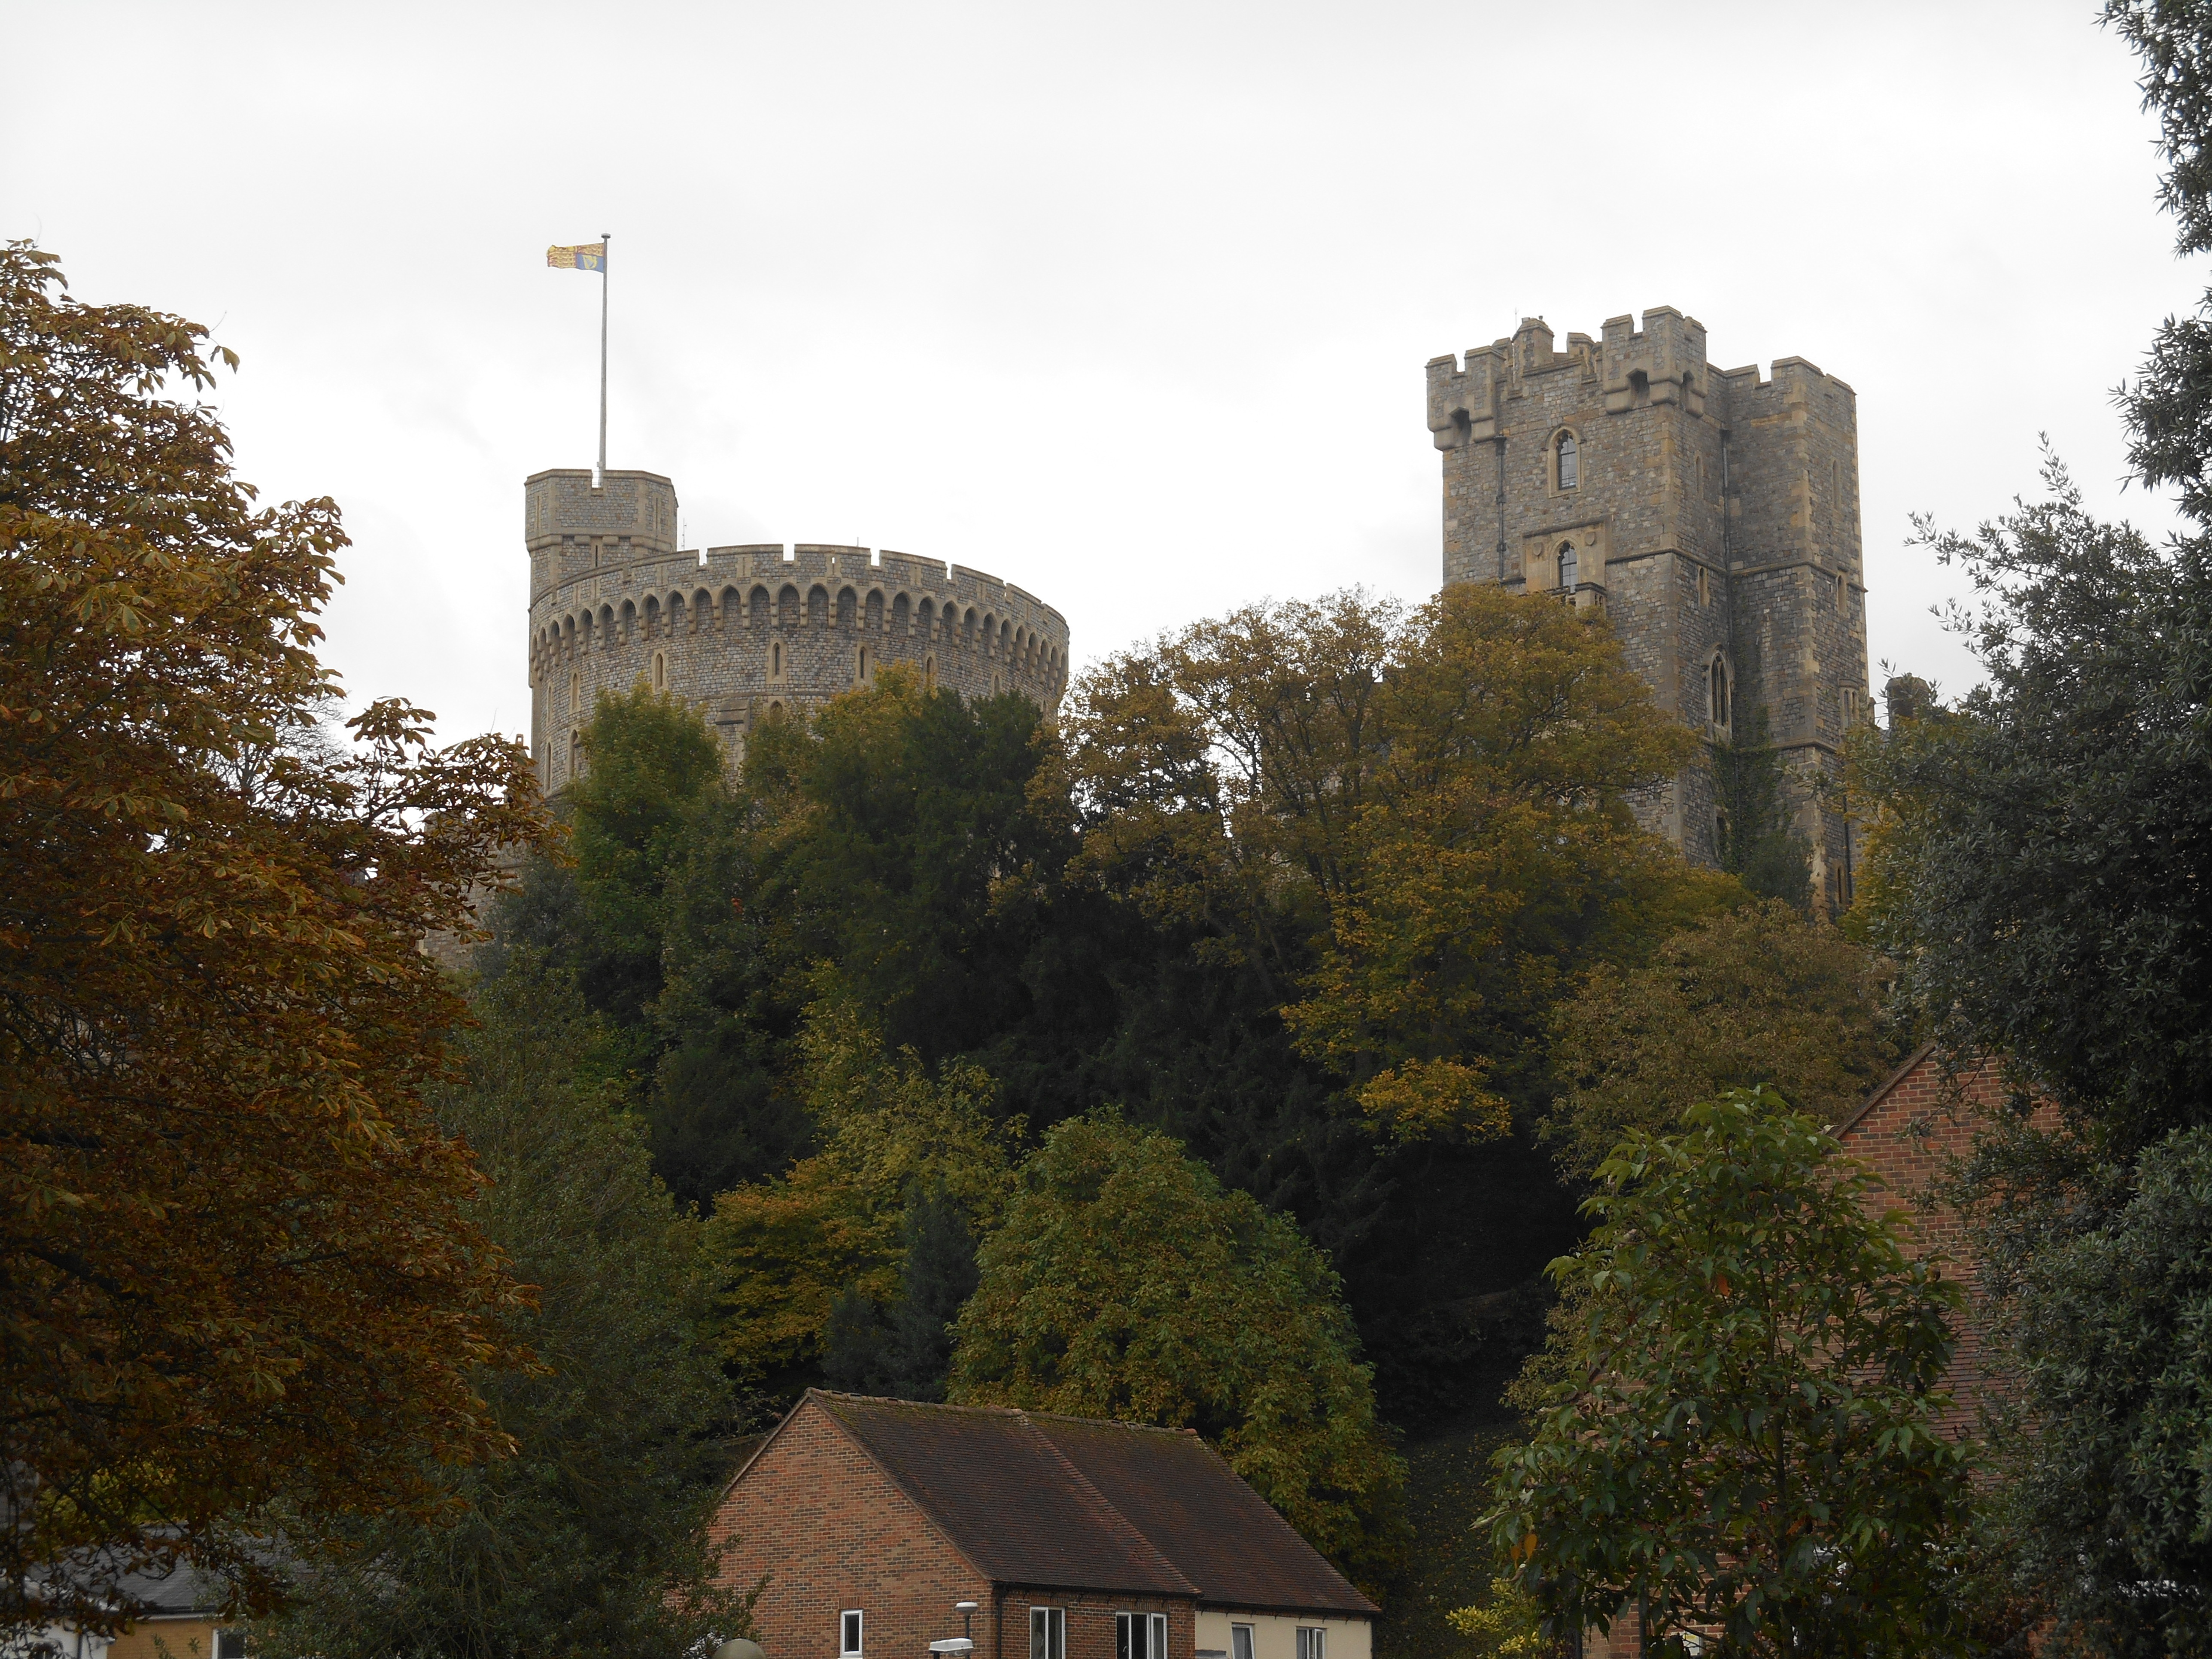 A quick glimpse of Windsor castle on the way back to the train.